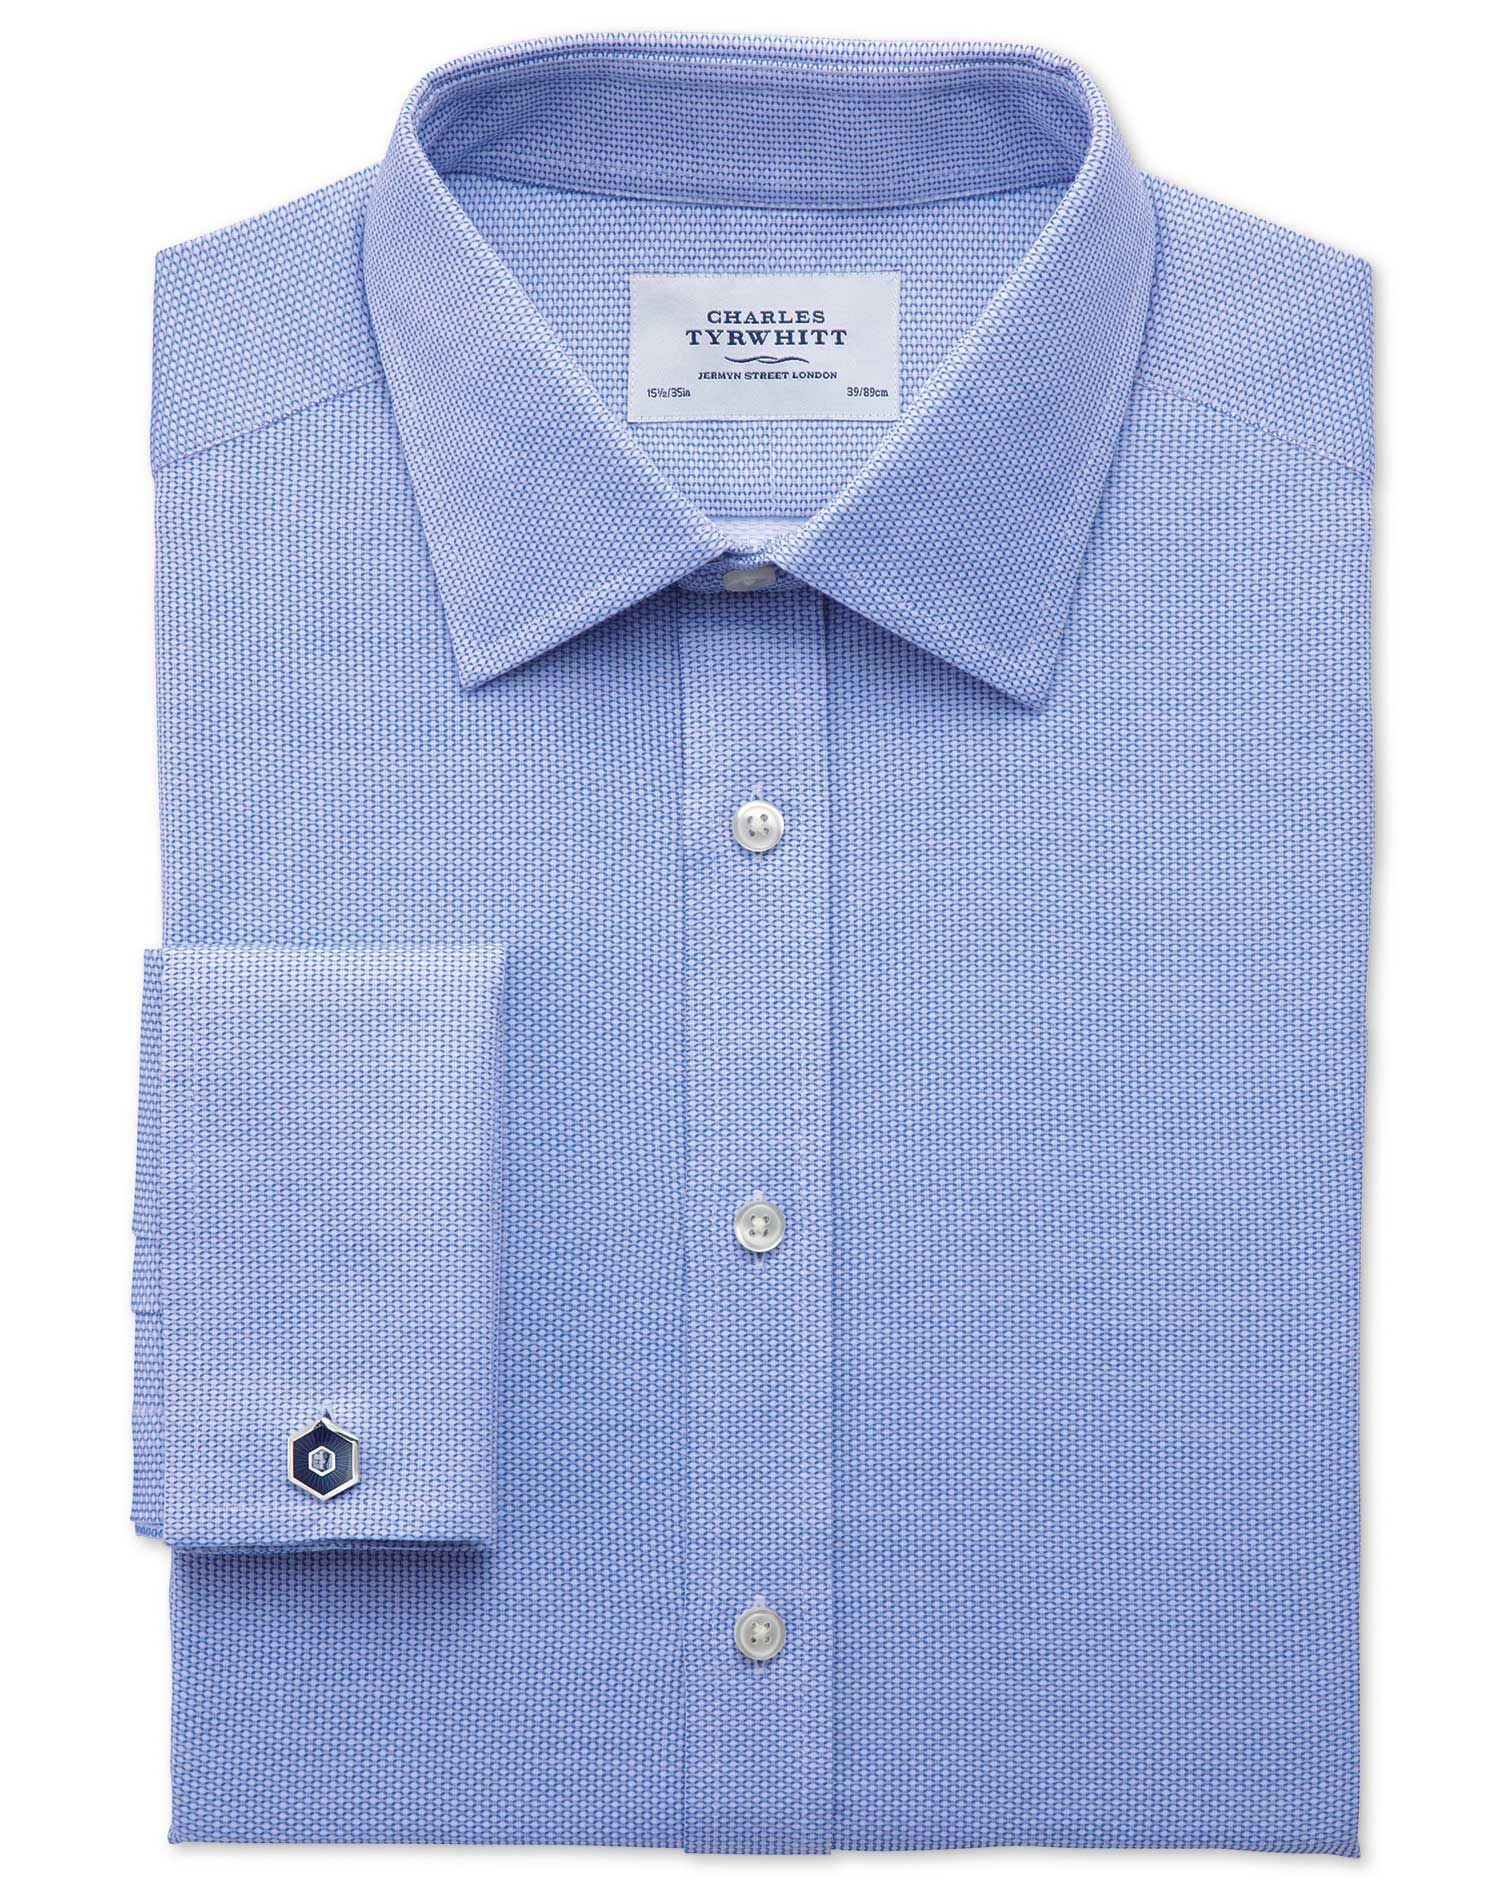 Extra Slim Fit Egyptian Cotton Diamond Texture Mid Blue Formal Shirt Single Cuff Size 16/34 by Charl